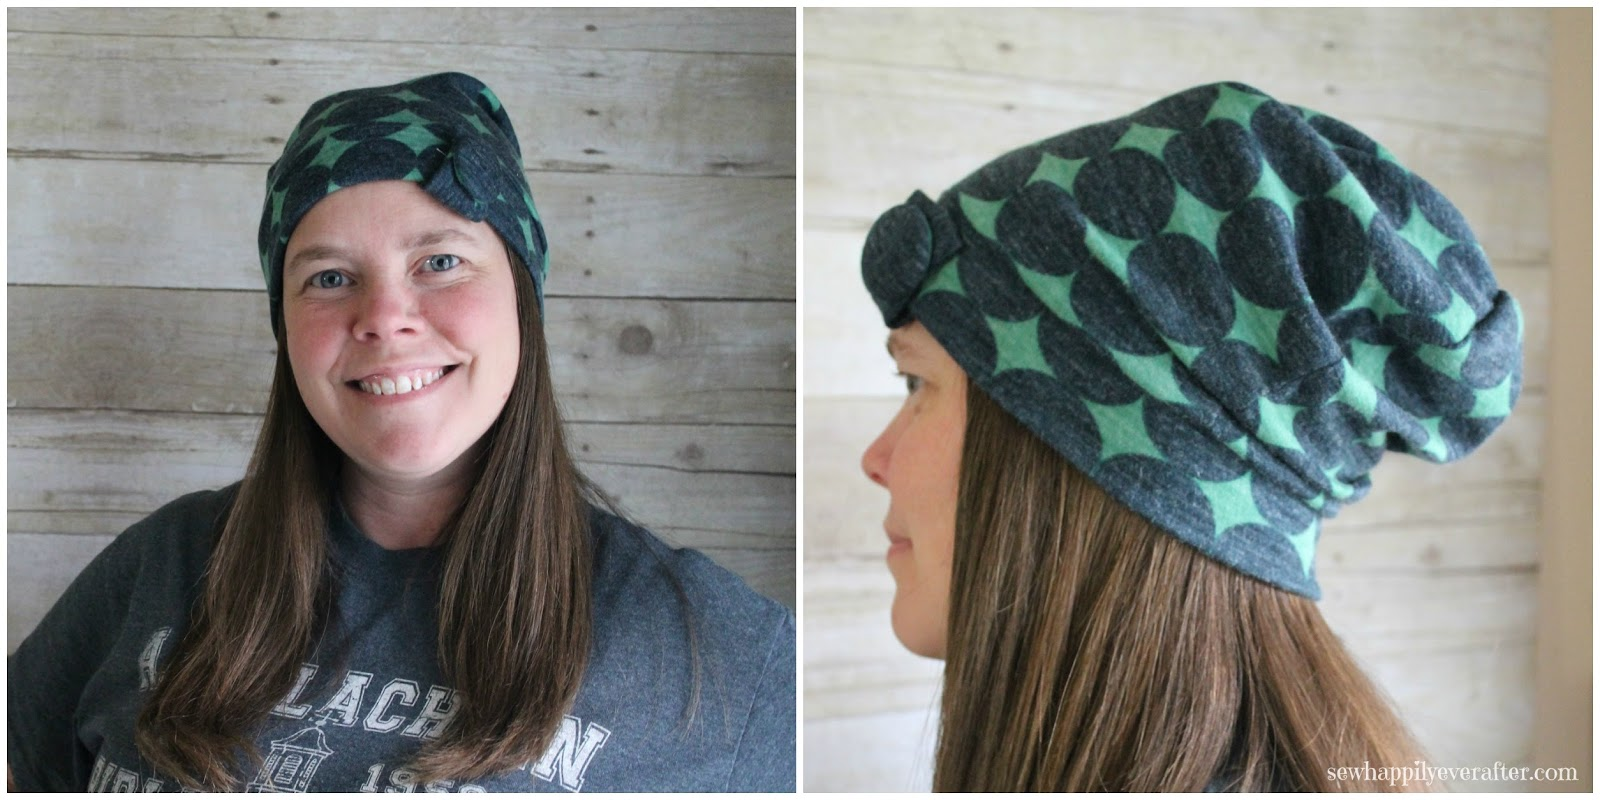 10c6a88c98b Sew Happily Ever After  Enid Slouch Beanie--OT 10 blog tour